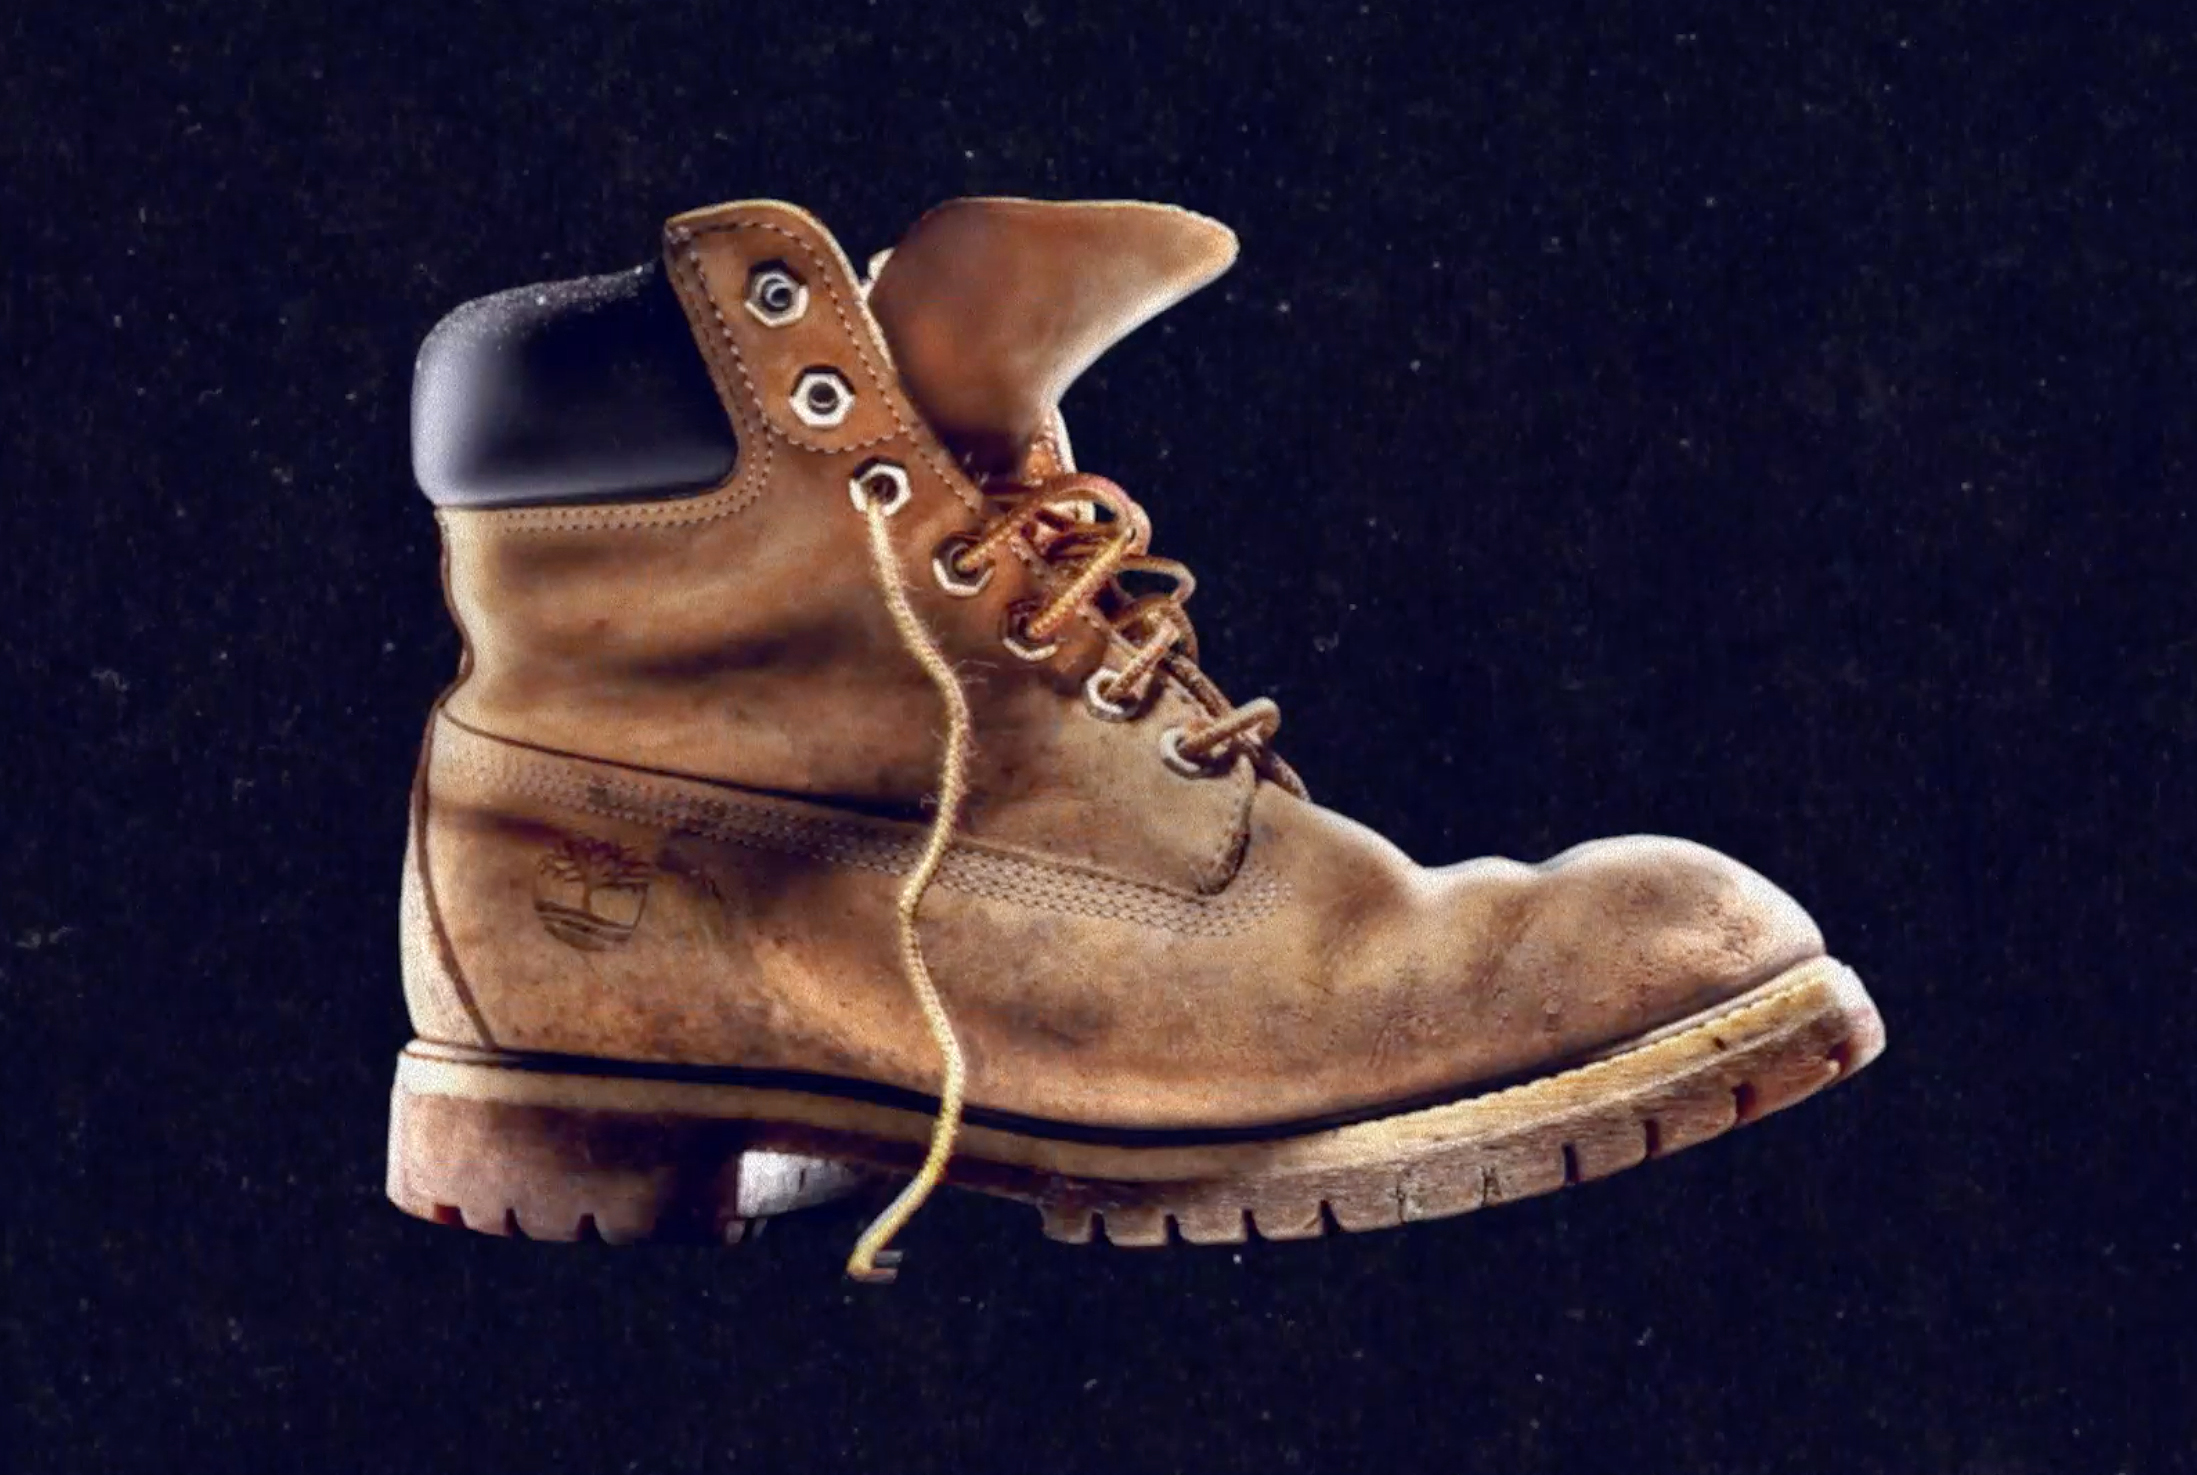 These boots are worthless